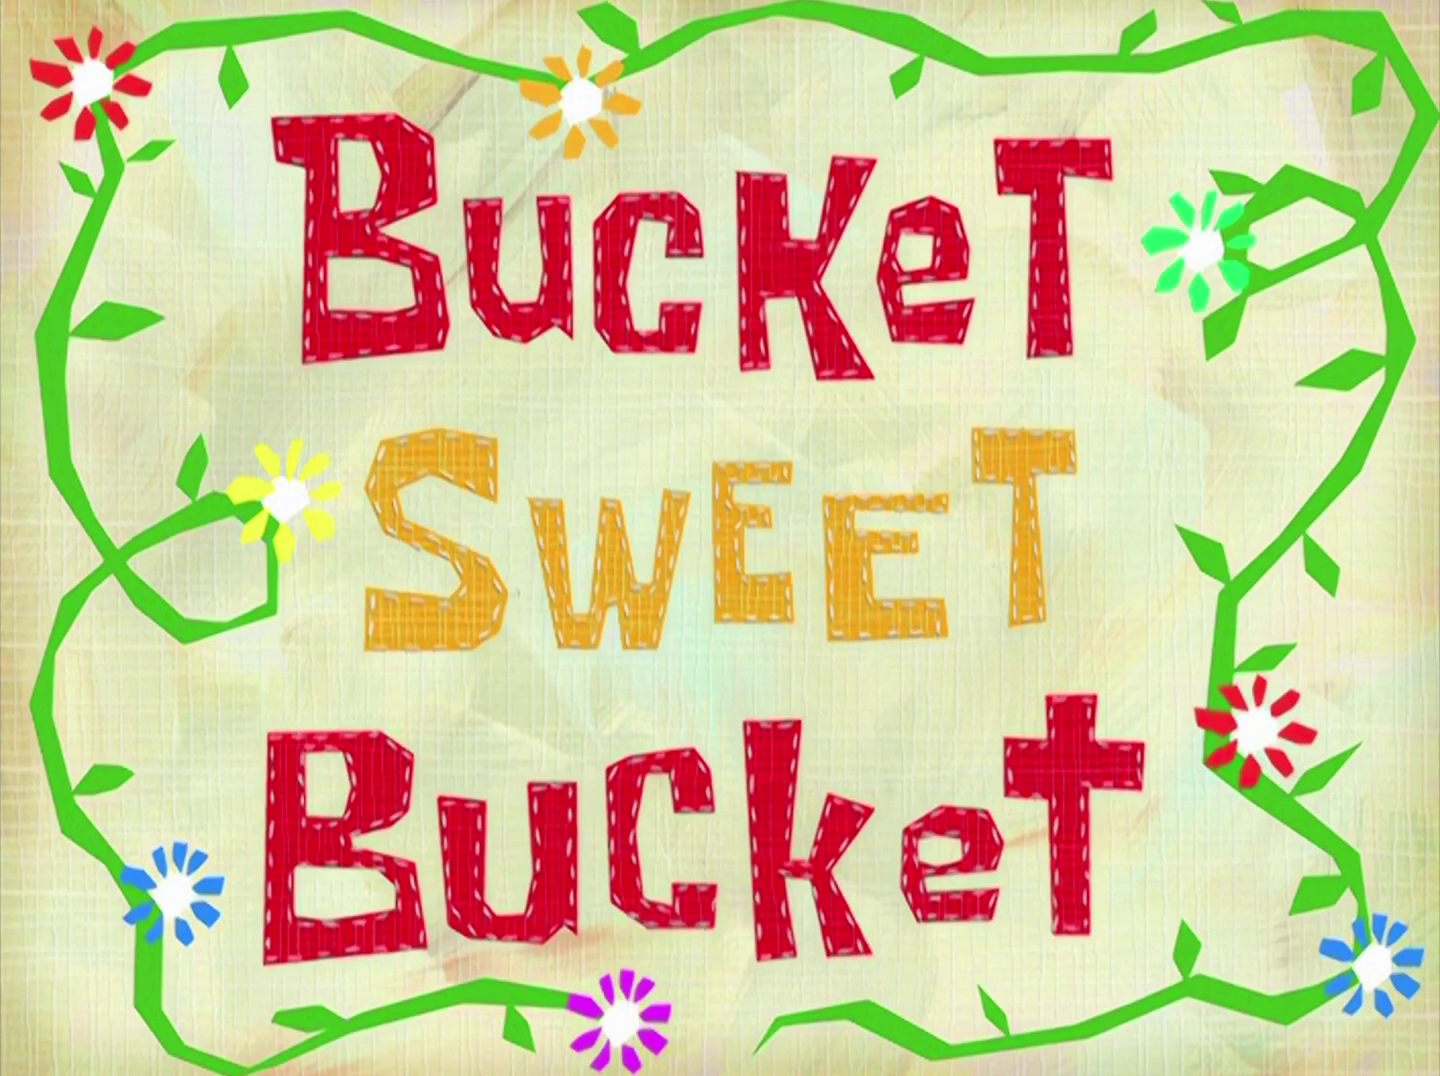 Bucket Sweet Bucket/transcript